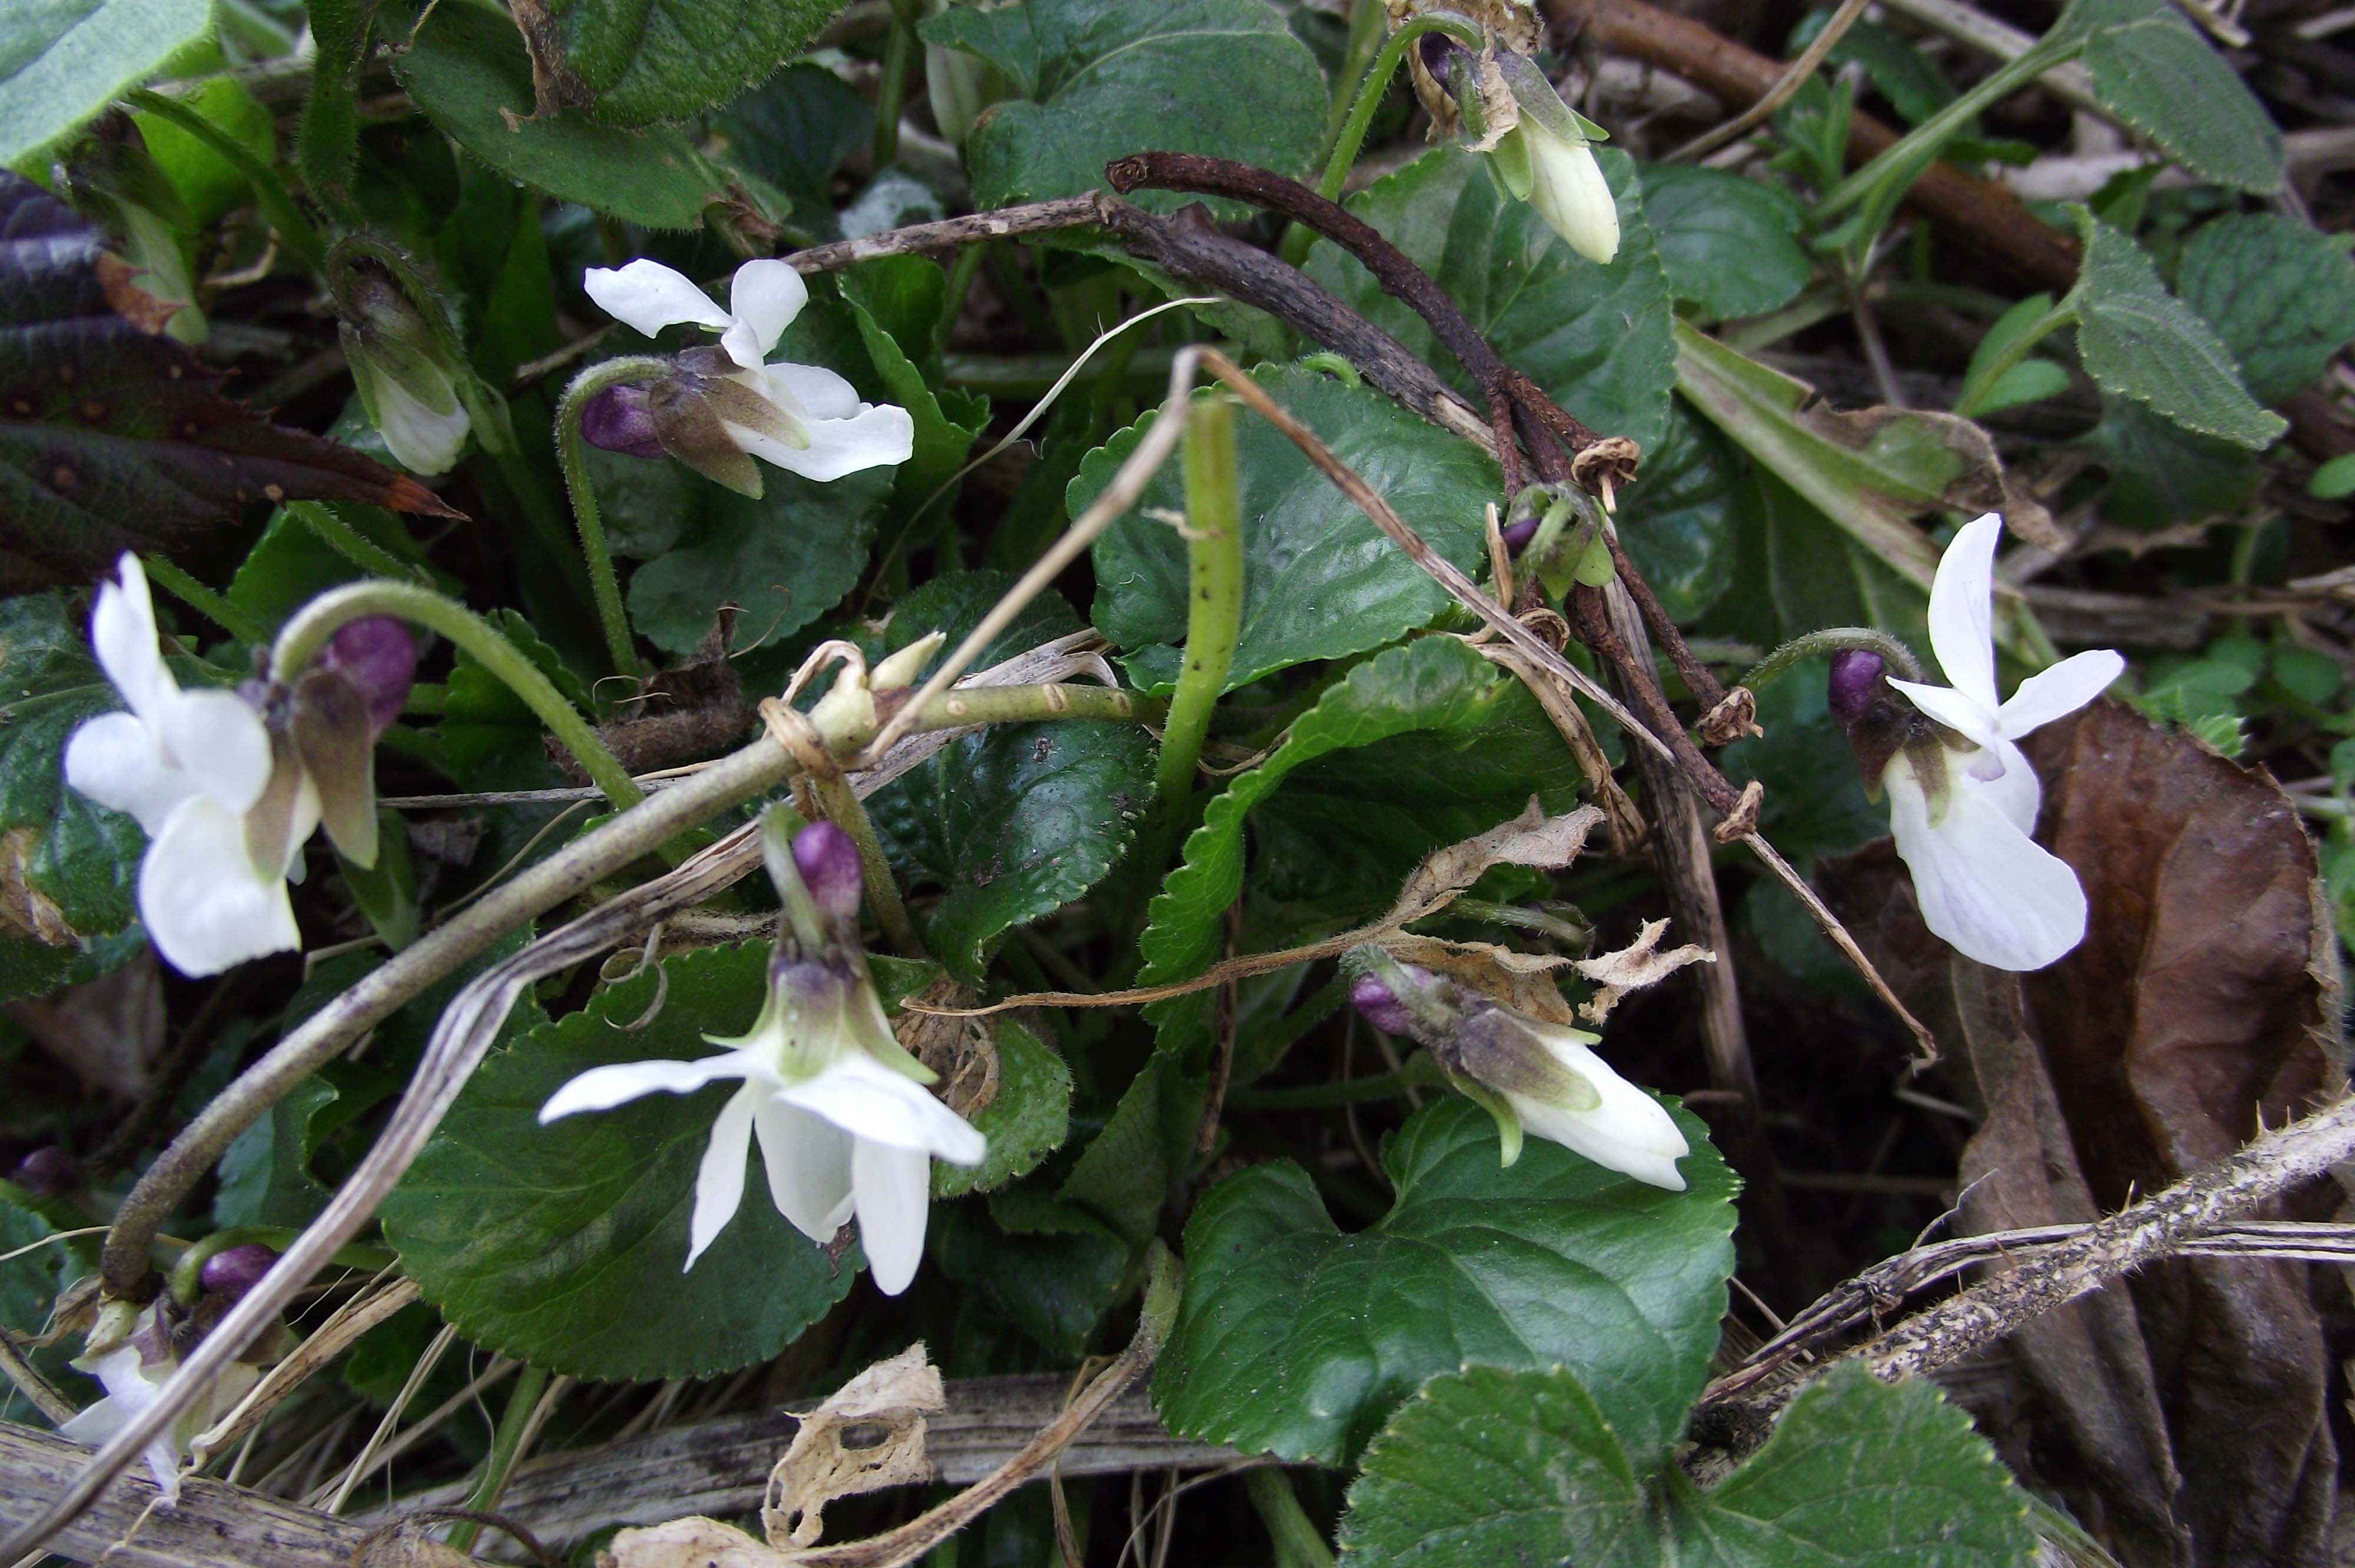 How to Get Rid of Wild Violets in Your Lawn